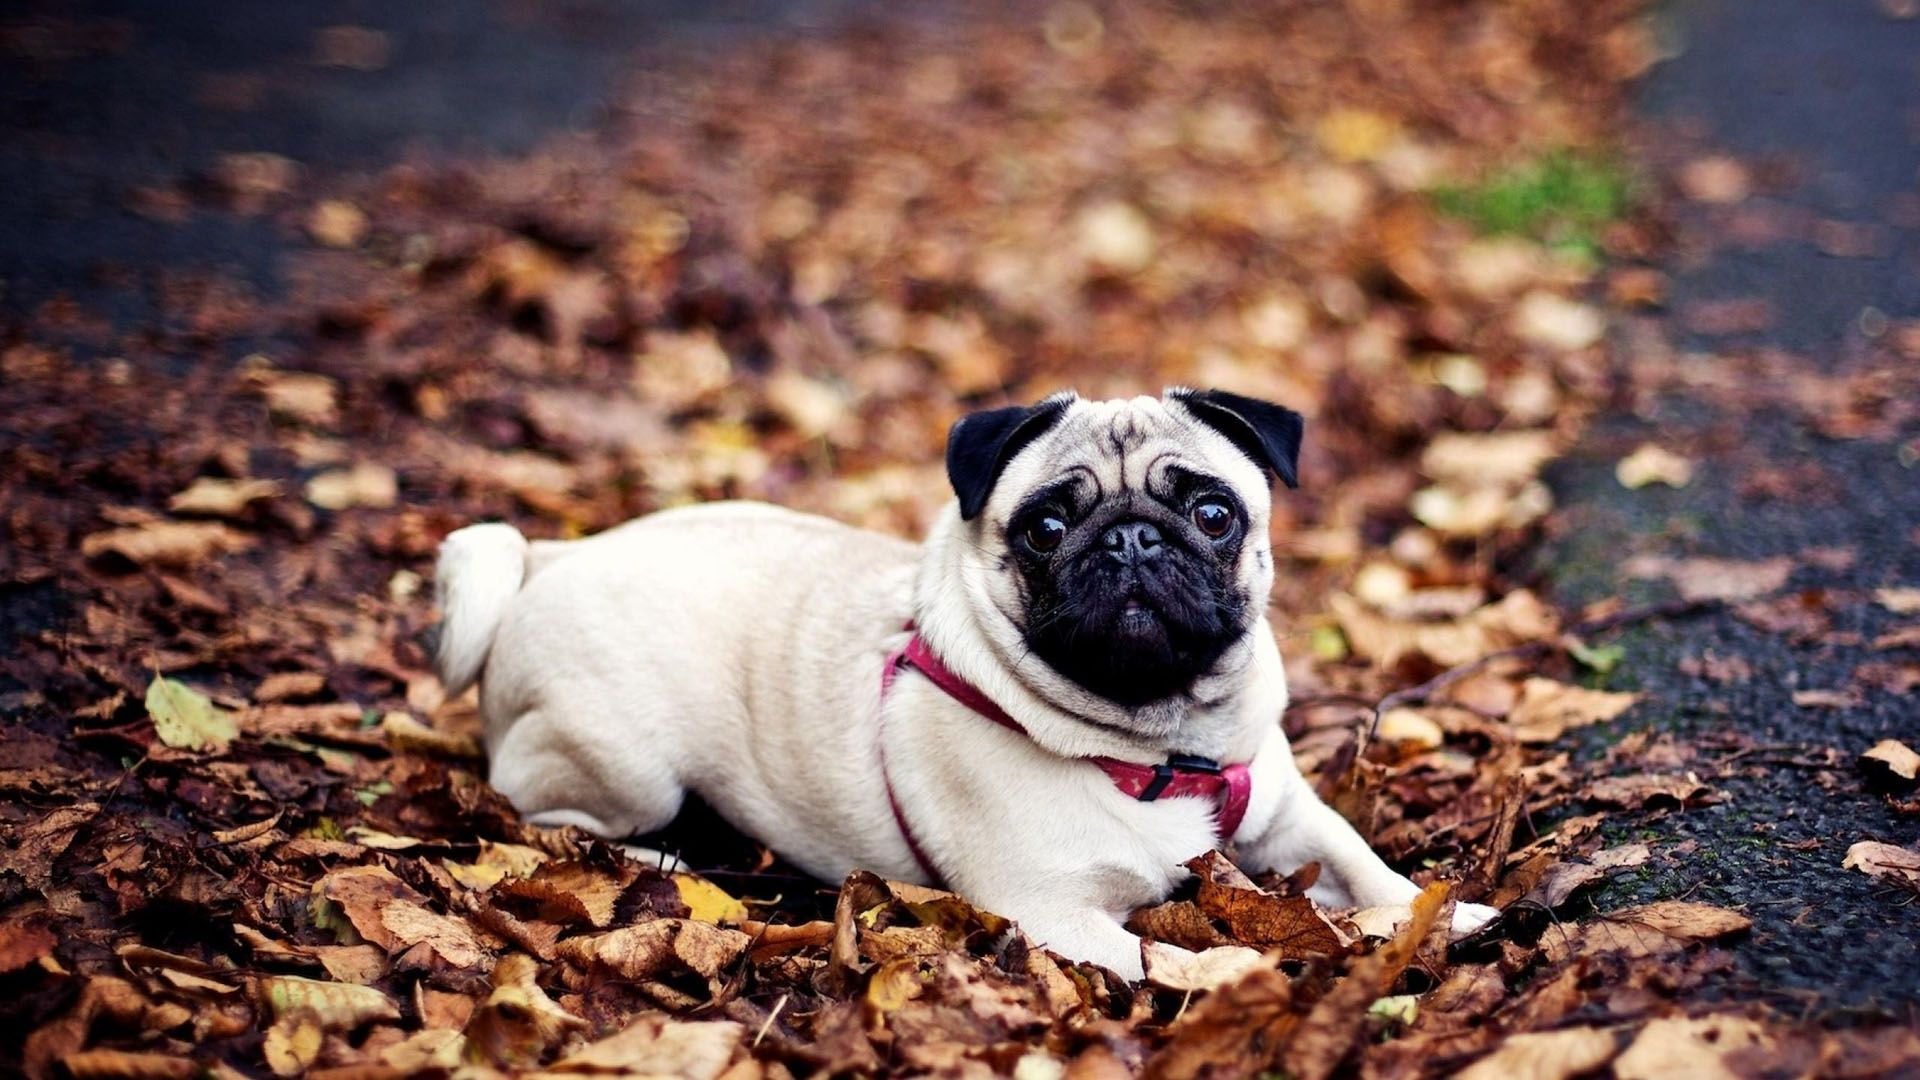 Pug Hd Wallpaper Cute Desktop Background Hd Wallpapers Of Pug Dog 1920x1080